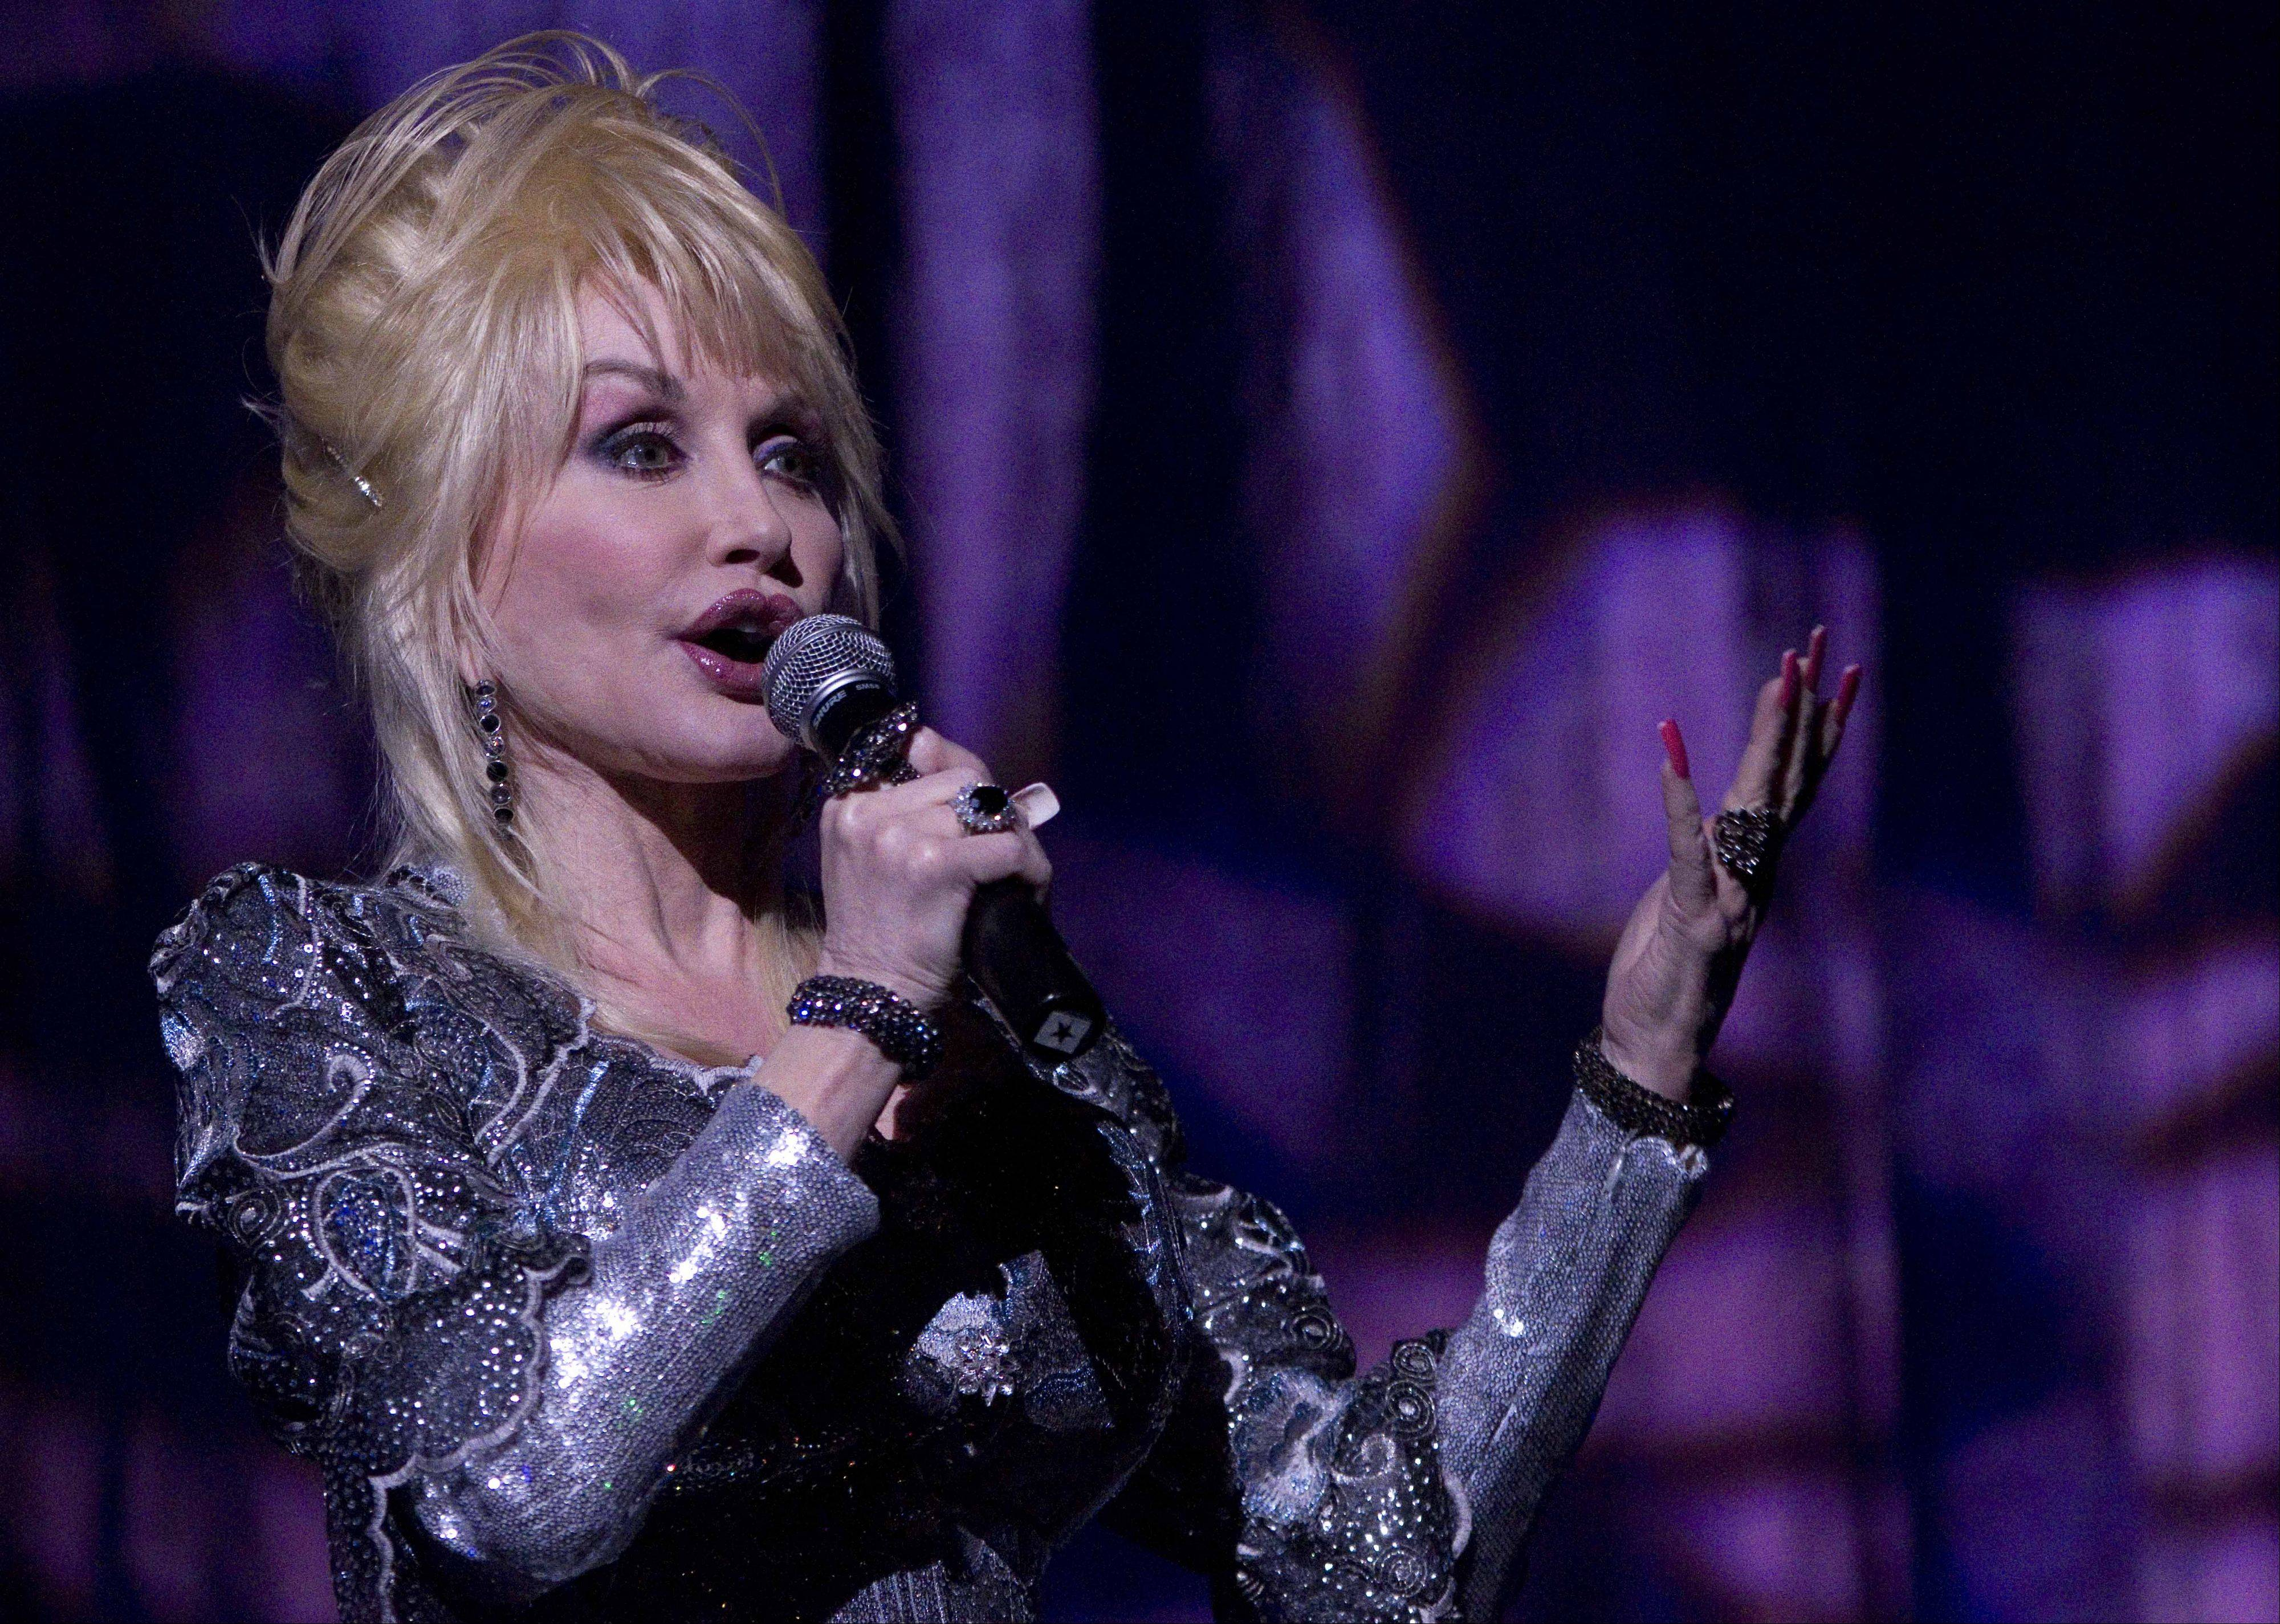 Country music superstar Dolly Parton brings her Better Day world tour to the Rosemont Theatre on Thursday, July 28.